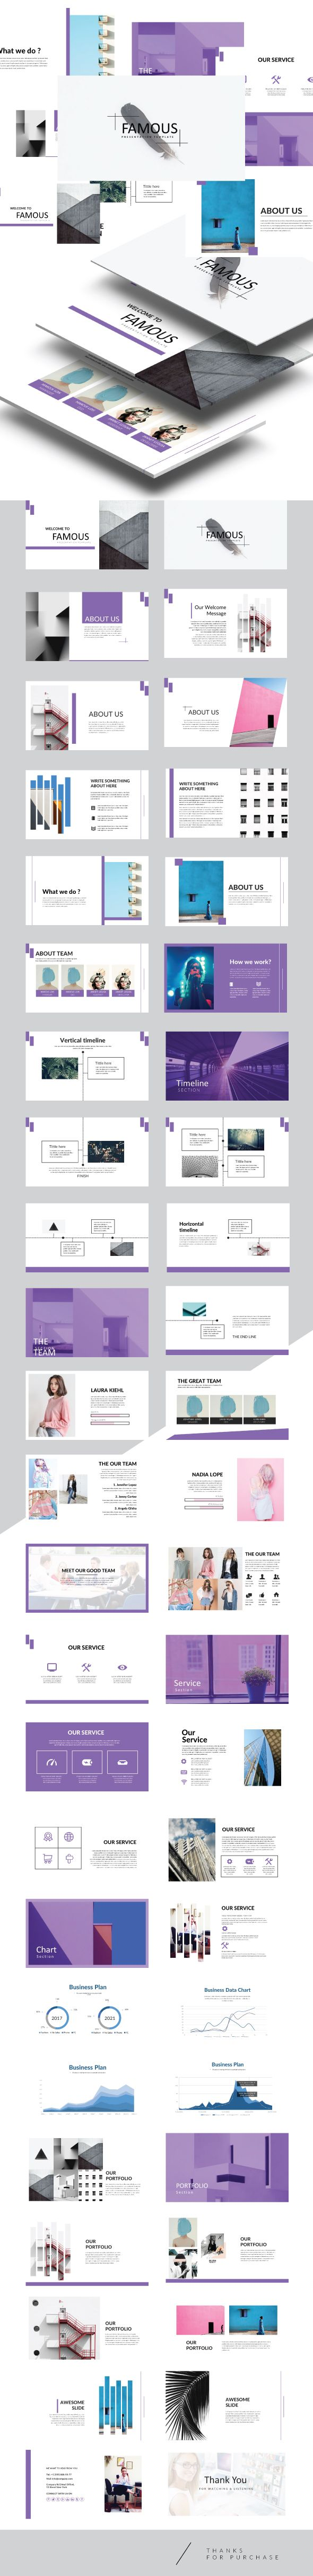 #Famous - Keynote #Presentation Template - Creative #Keynote Templates Download here: https://graphicriver.net/item/famous-keynote-presentation-template/19657820?ref=alena994